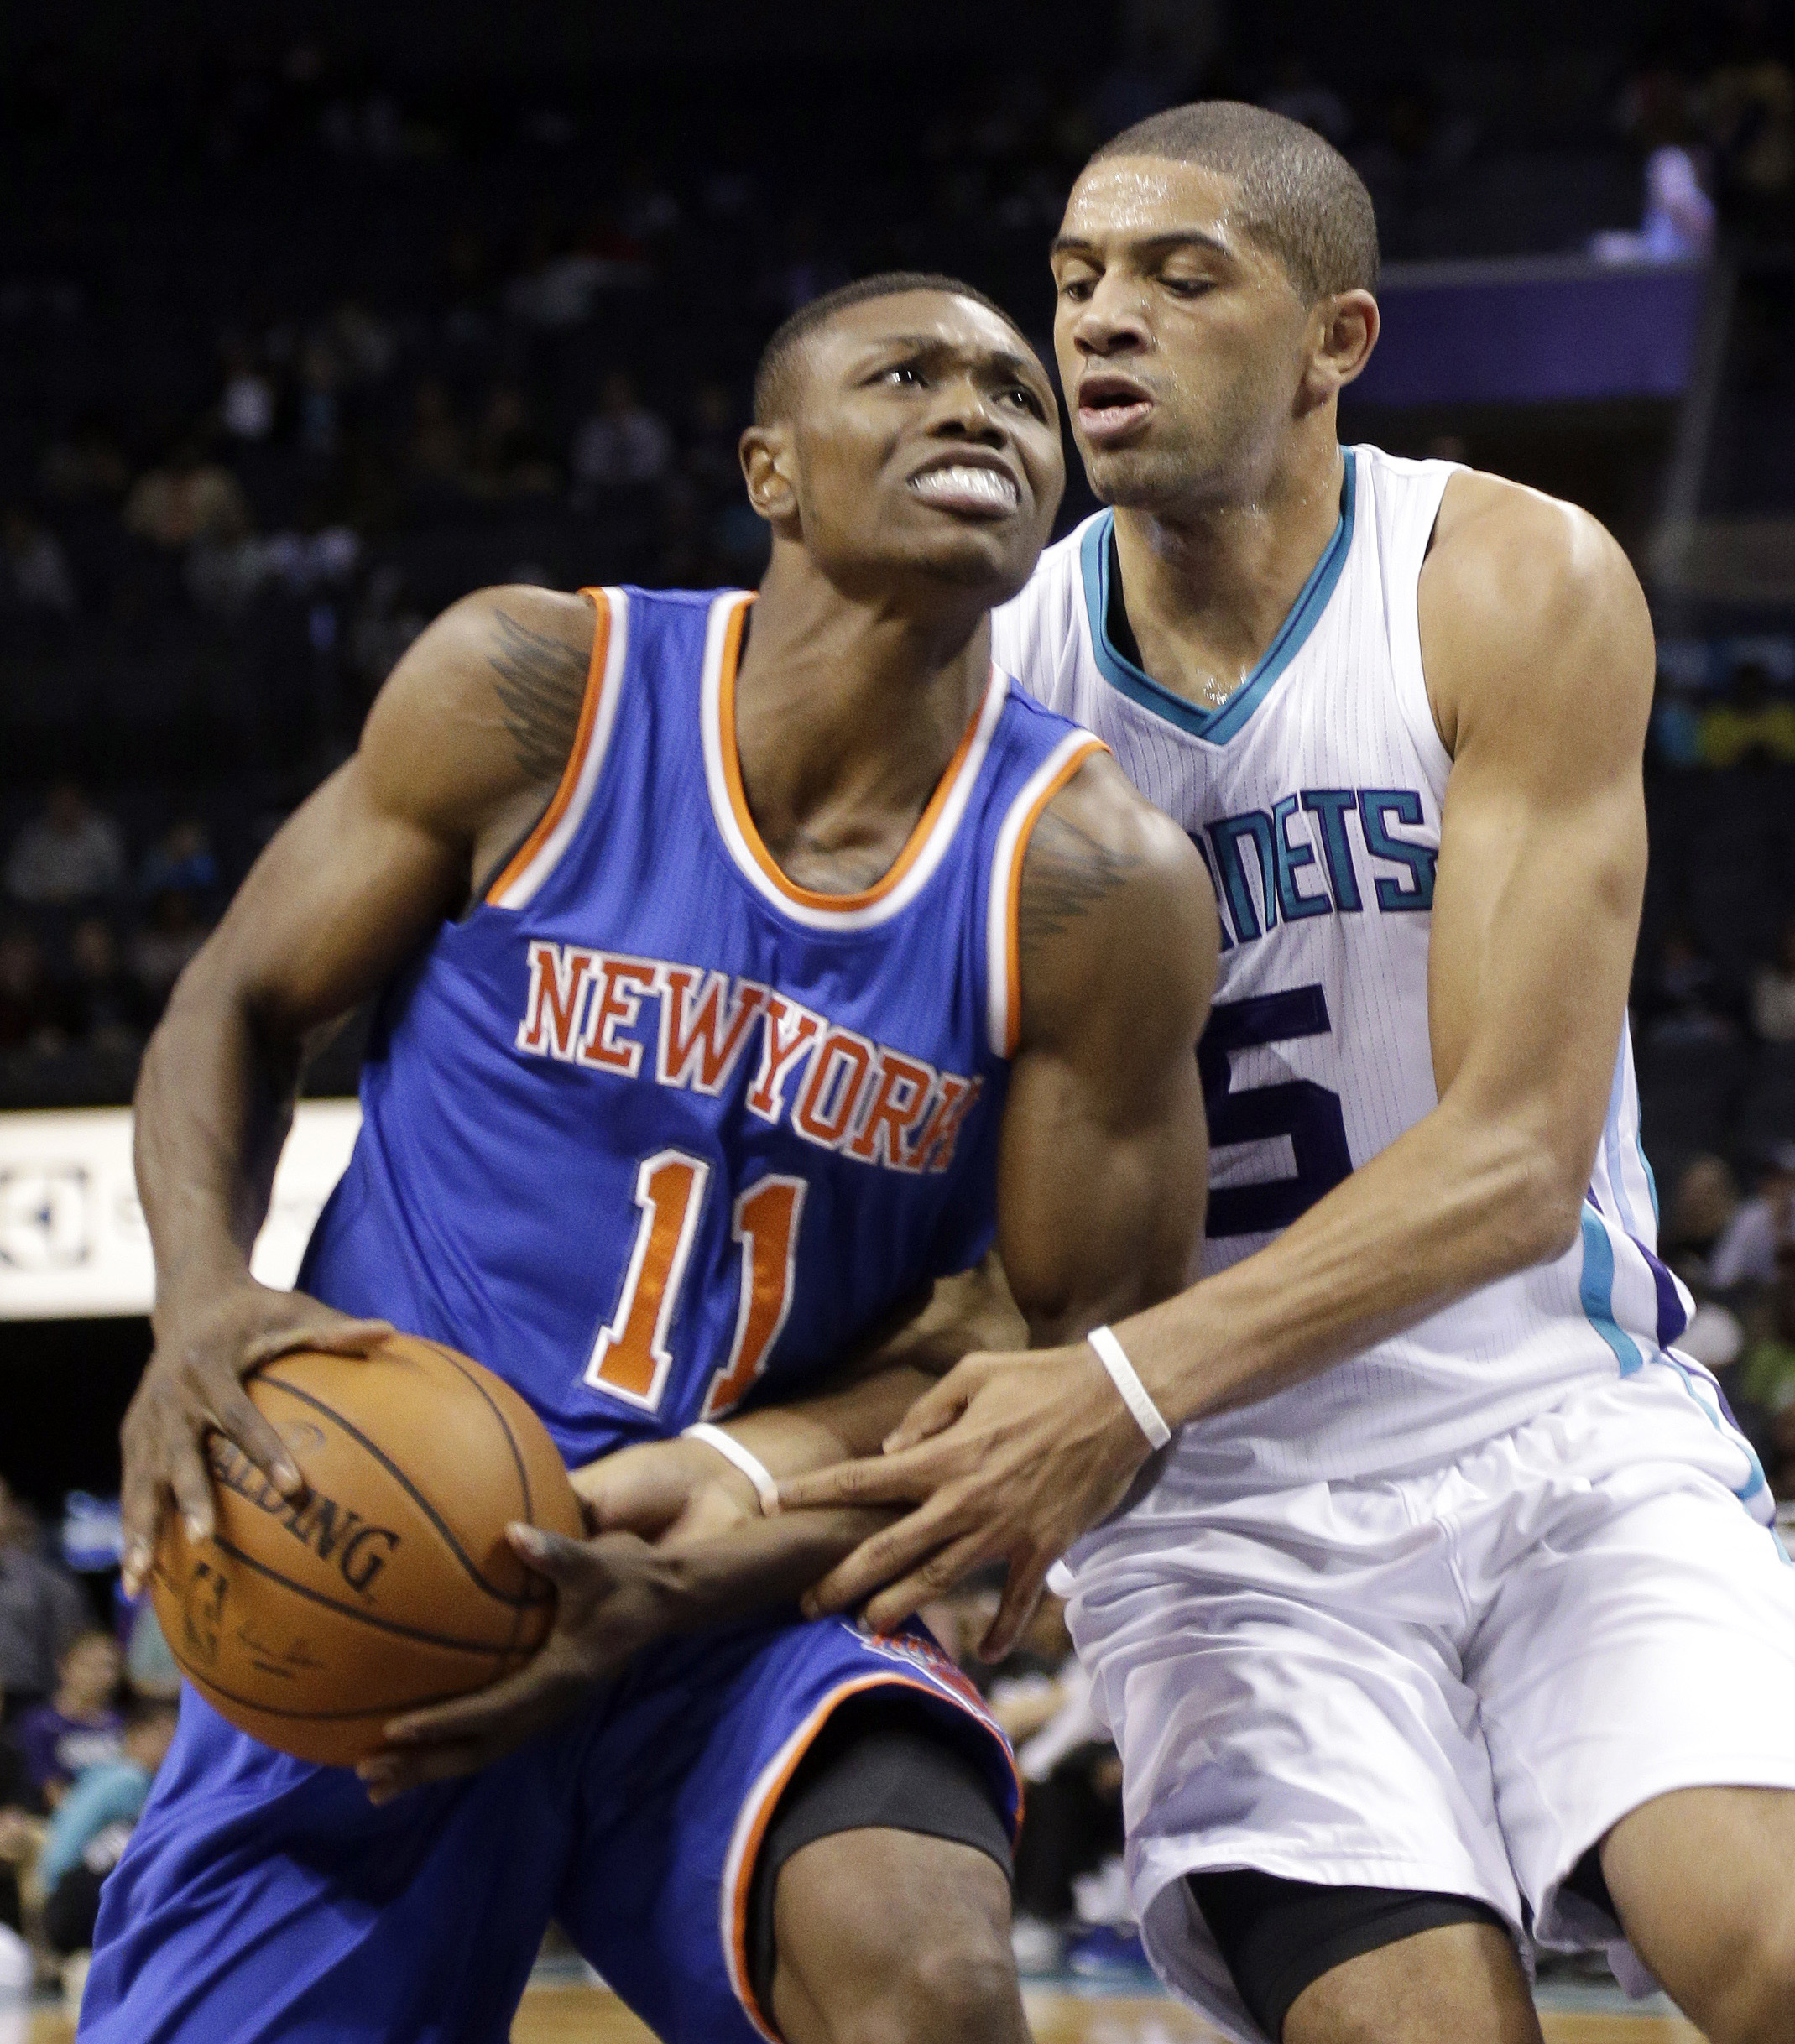 FILE - In this Oct. 17, 2015, file photo, New York Knicks' Cleanthony Early (11) is fouled by Charlotte Hornets' Nicolas Batum (5) in the first half of an NBA preseason basketball game in Charlotte, N.C. Law enforcement officials say Early was shot in the